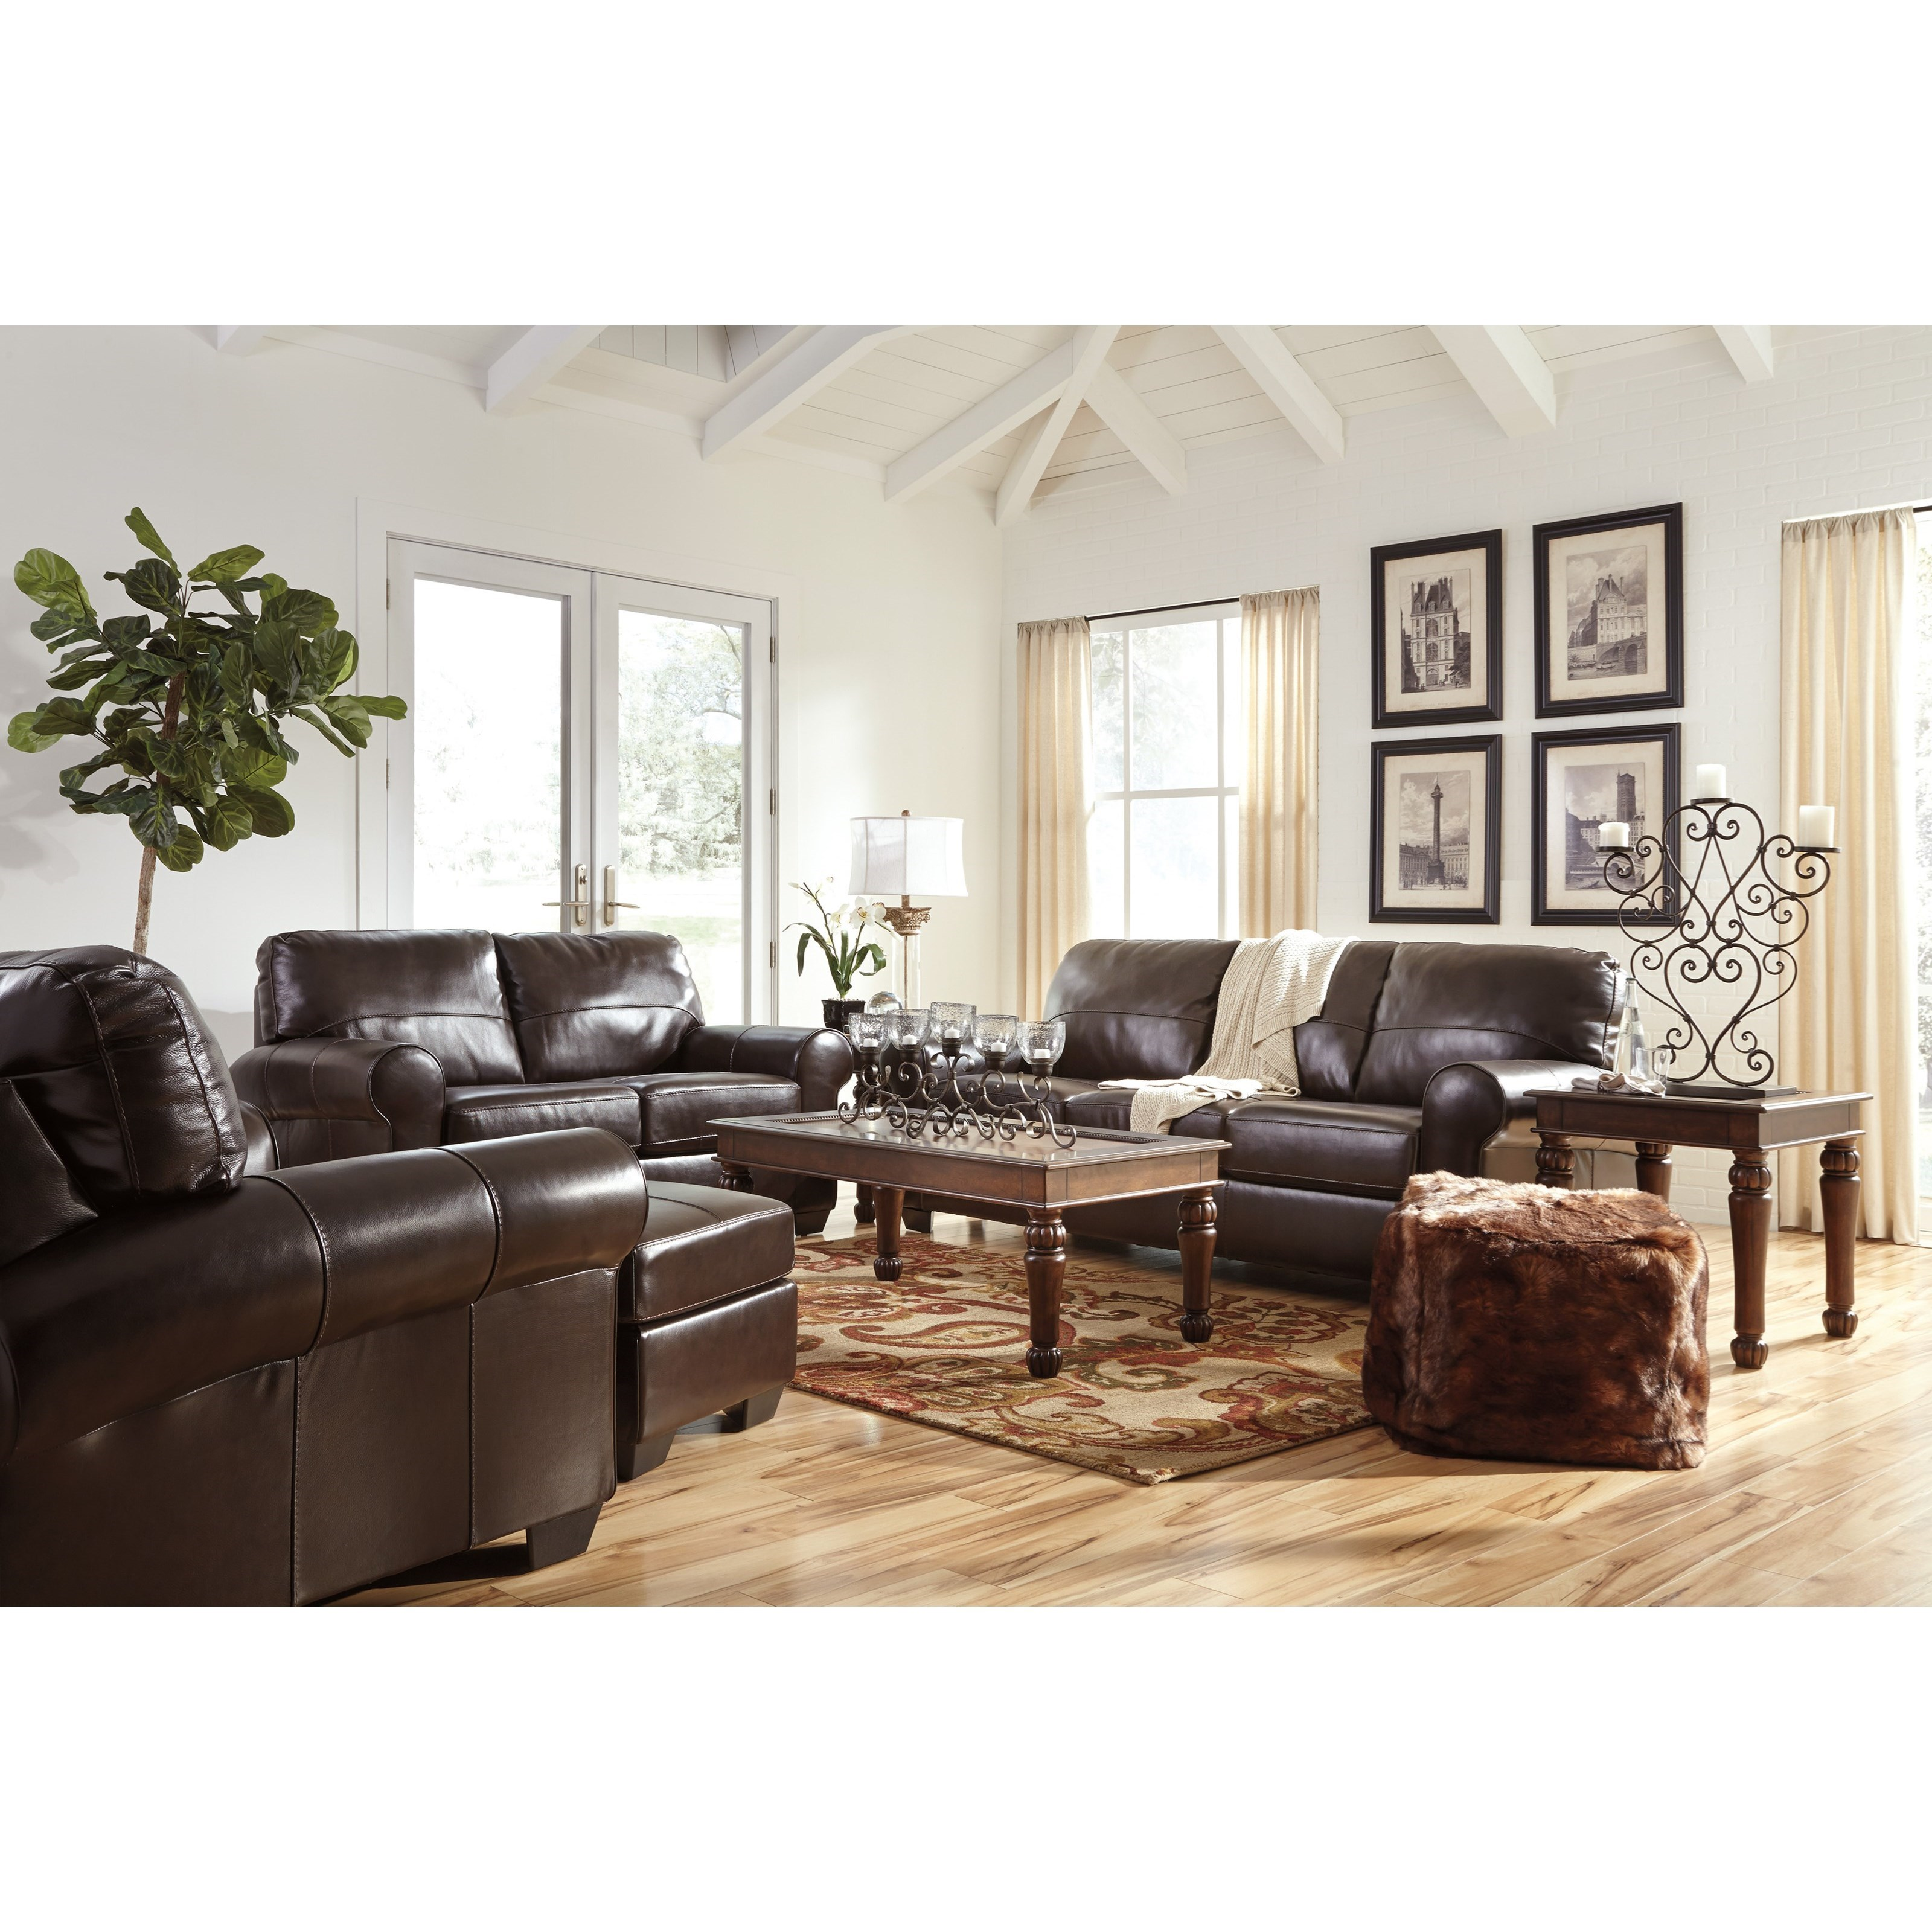 Signature Design By Ashley Canterelli Stationary Living Room Group Olinde 39 S Furniture